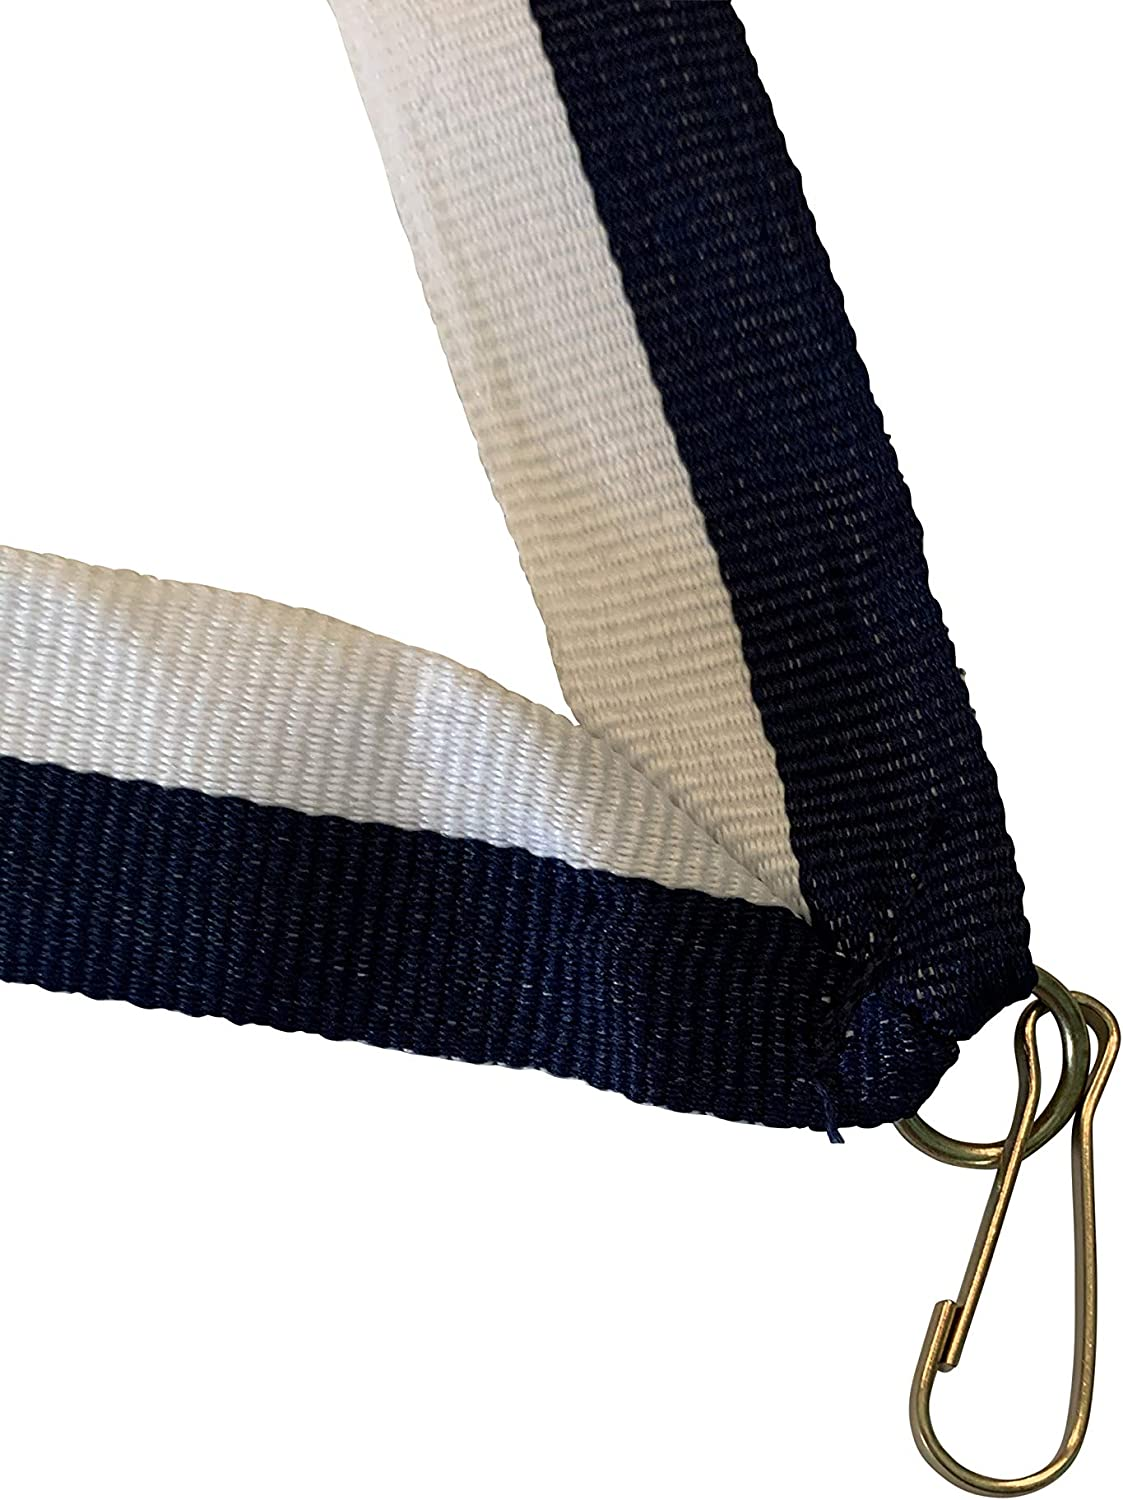 Navy Blue and White Neck Ribbons for Medals with Snap Clips Flat Lanyard Award Pack of 10